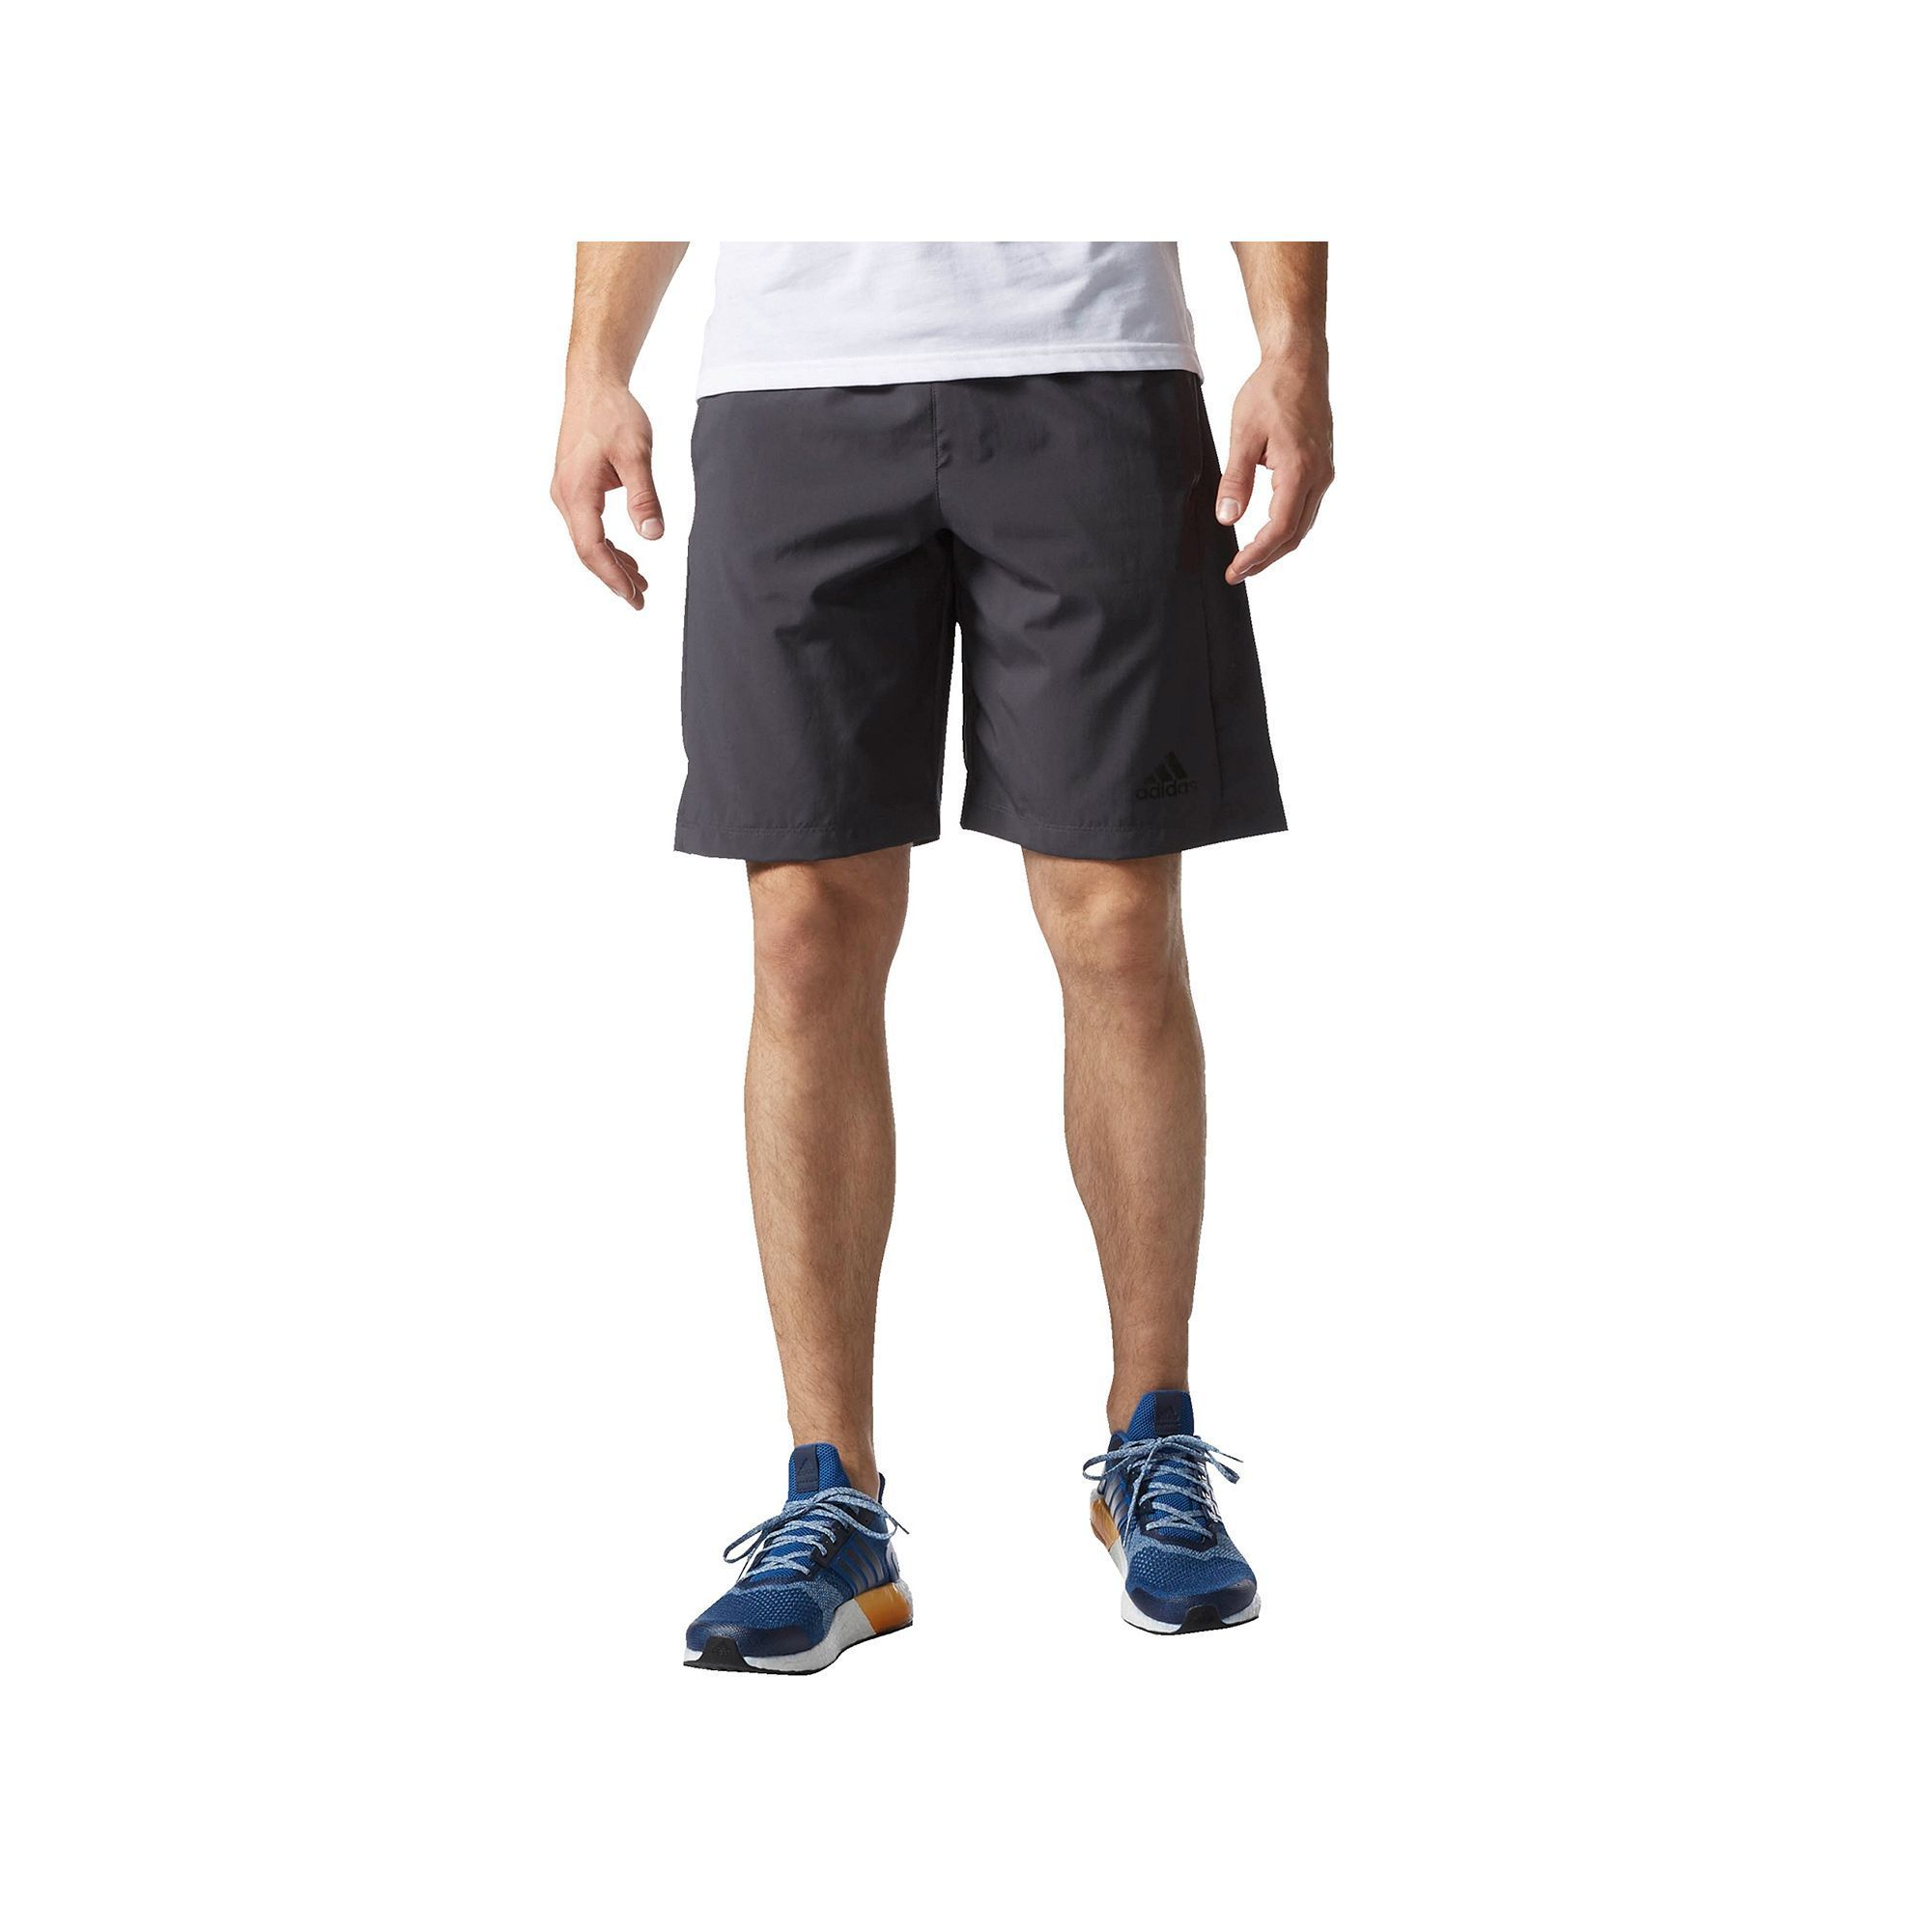 7f09fd481aa38 Men's adidas Woven Climalite Shorts | Products | Adidas sport ...